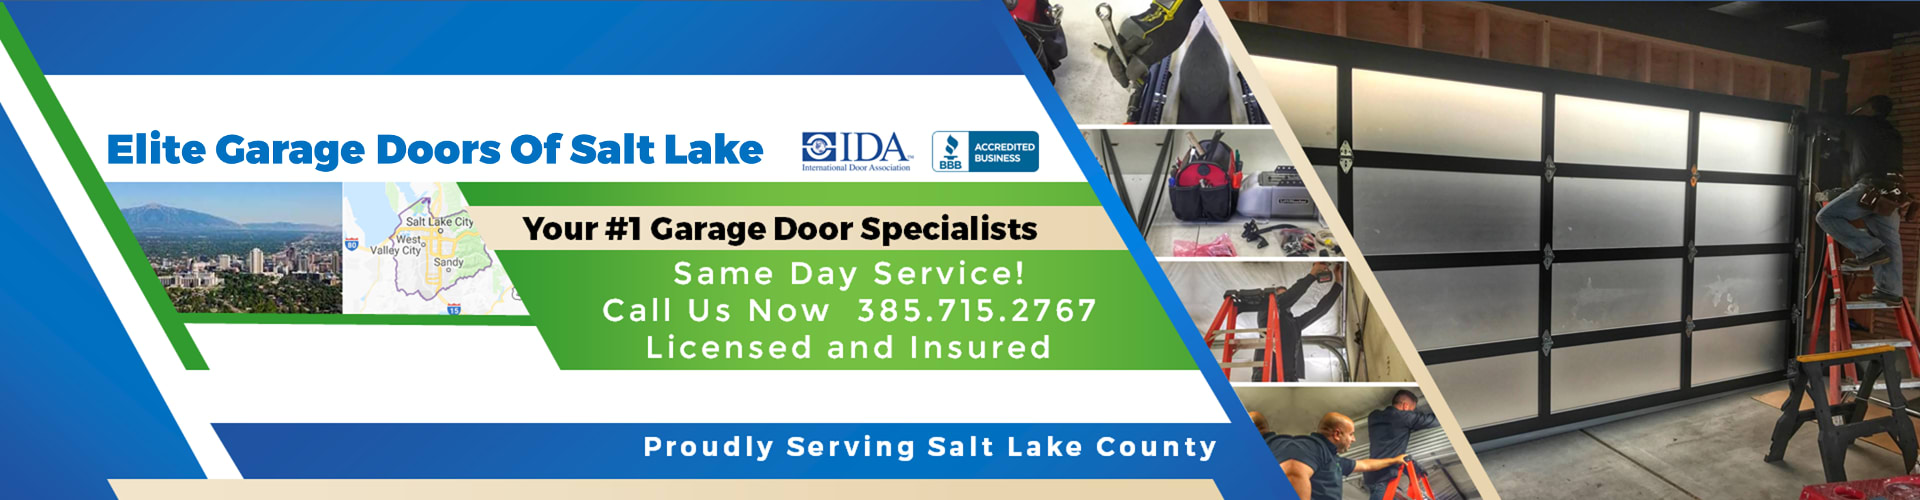 Elite® Garage Doors, Repair U0026 Services In Salt Lake City UT U0026 Salt Lake